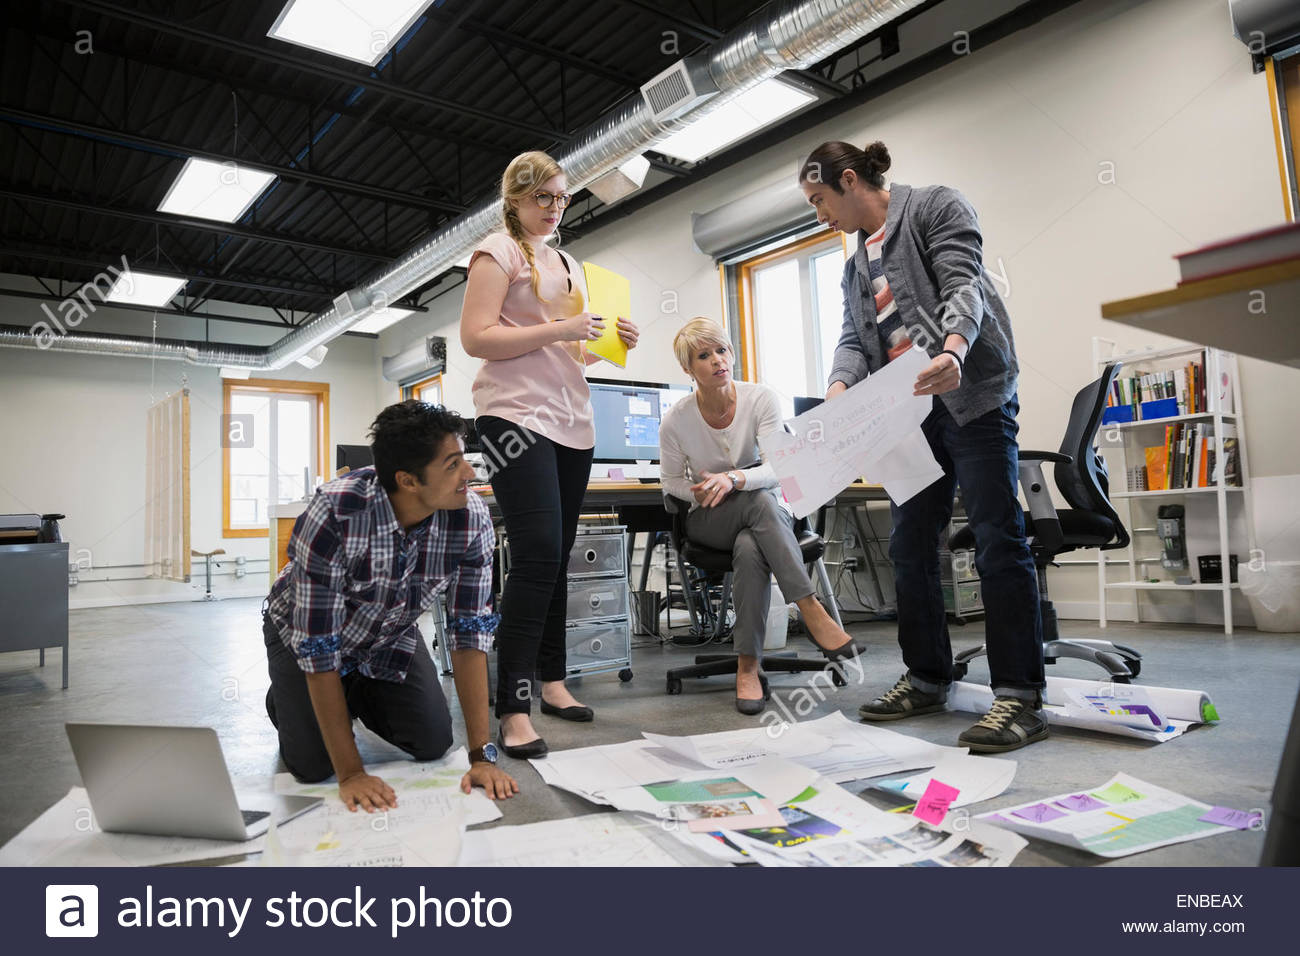 Graphic designers meeting reviewing proofs on office floor - Stock Image